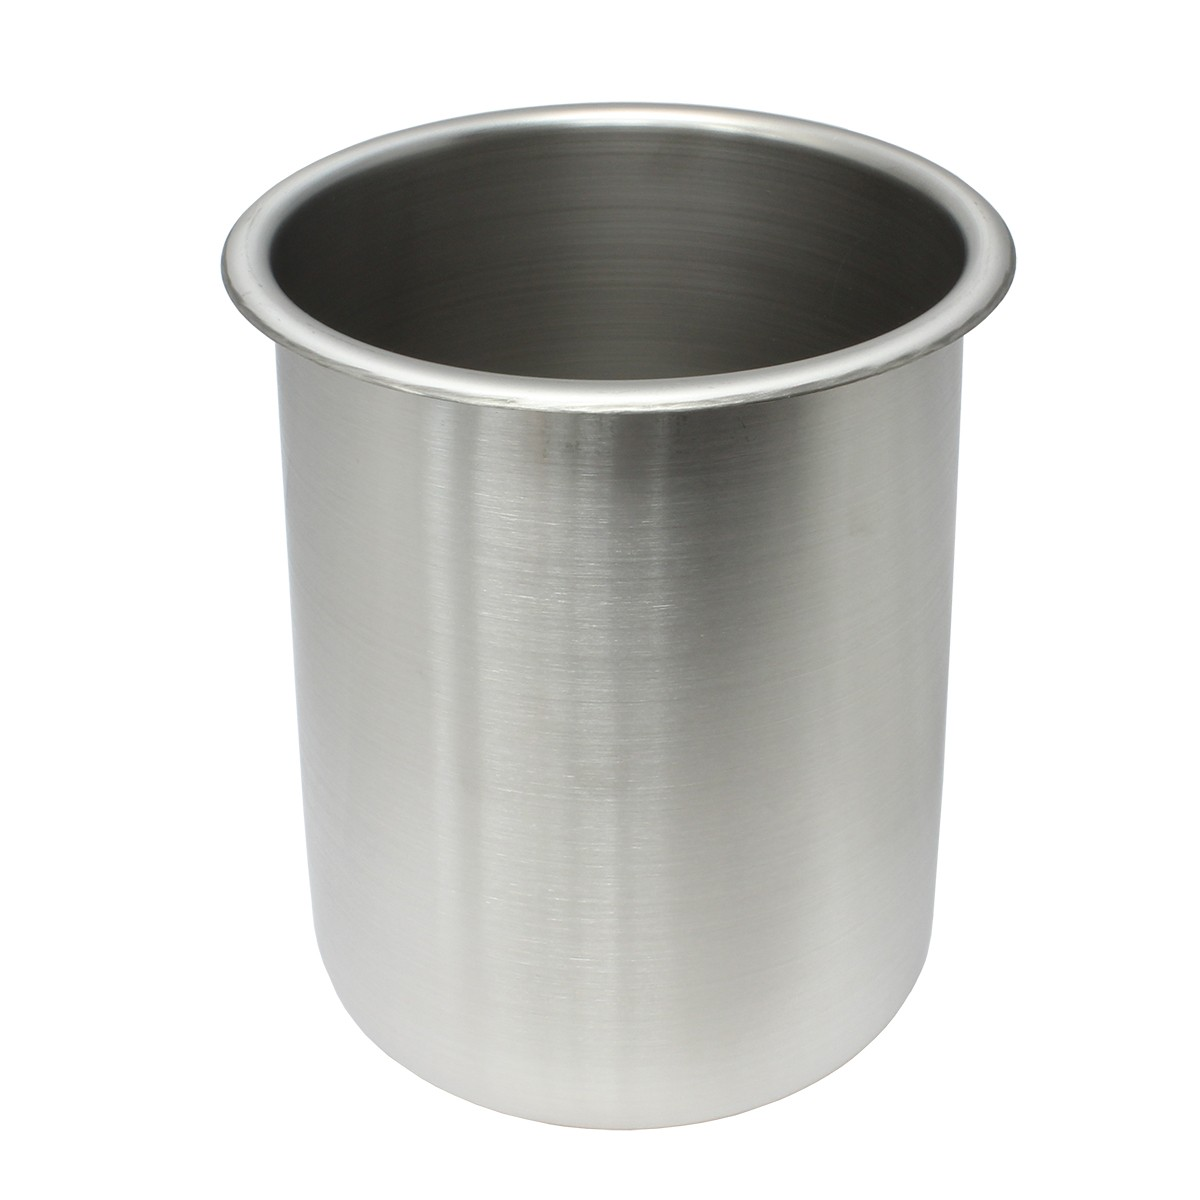 Stainless Steel Plating Tanks - 1.25 Qts